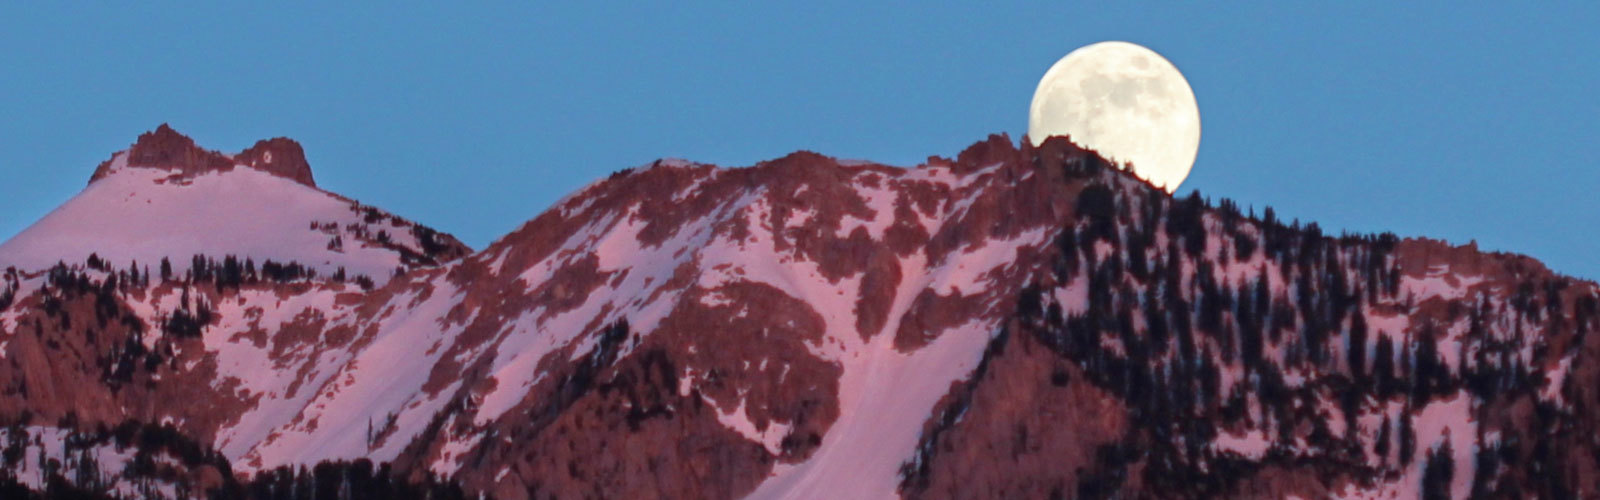 Moon rising over snow-capped mountain peak.